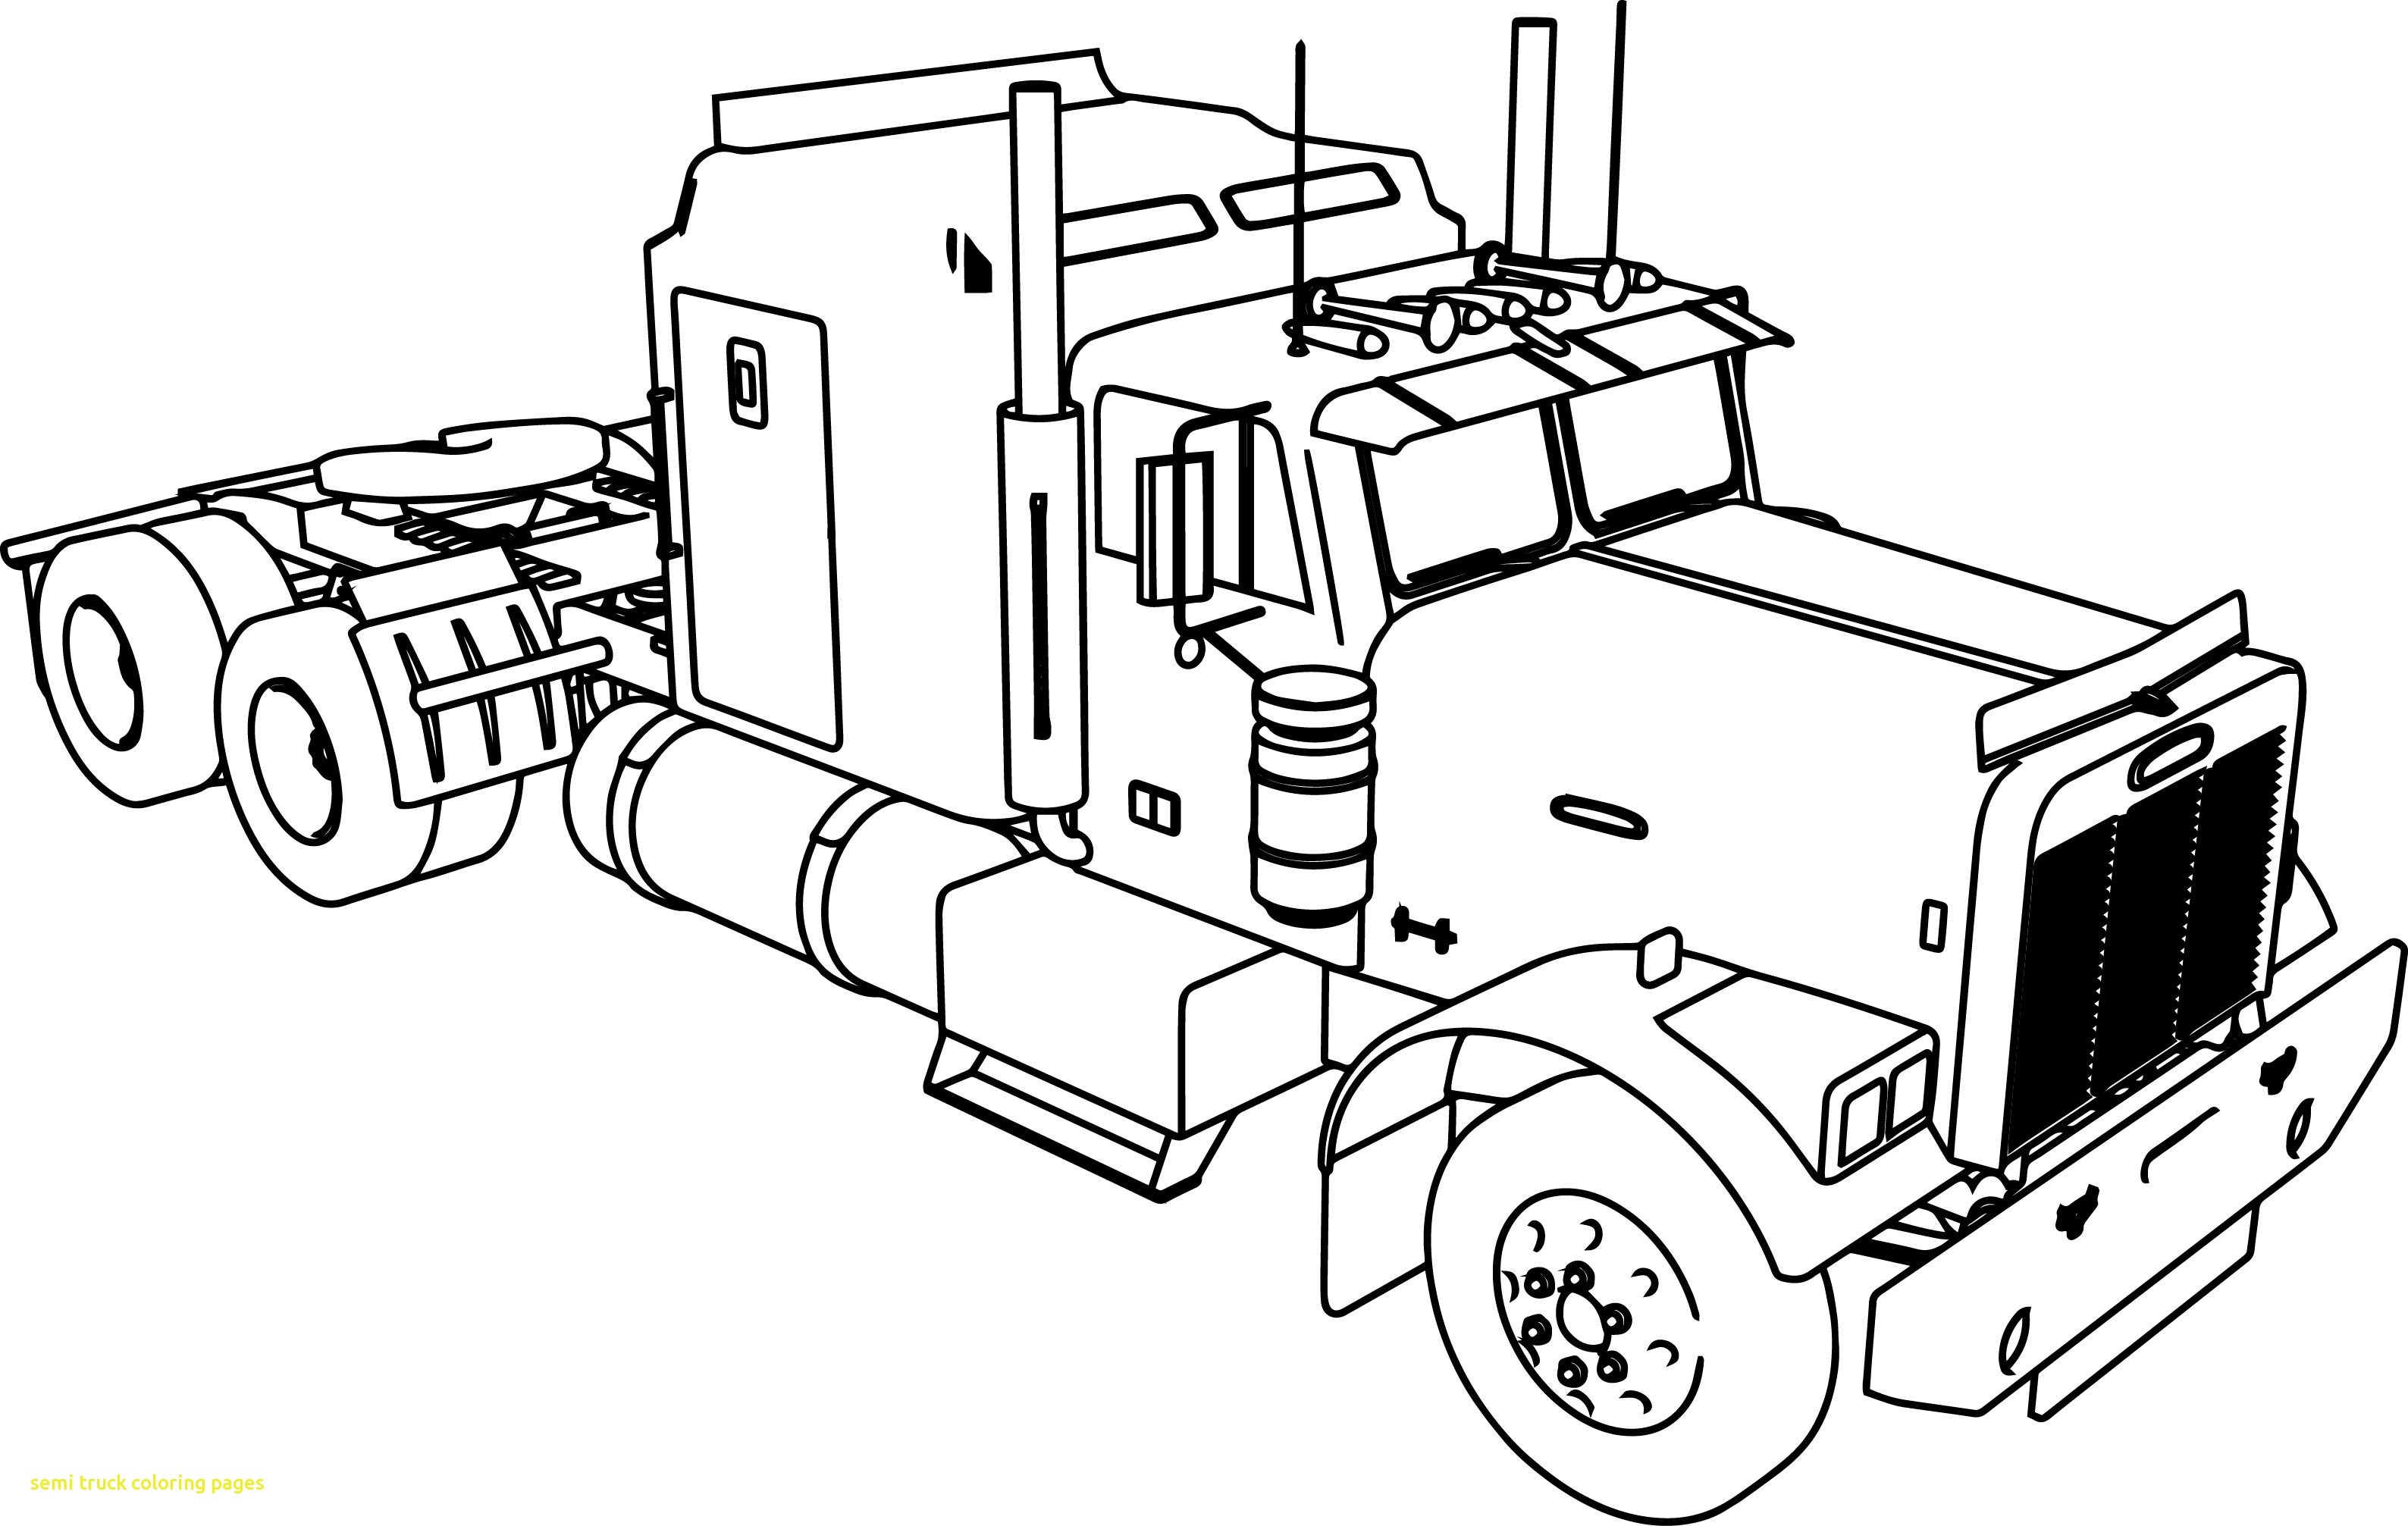 Truck Coloring Pages Gallery 15i - Free For Children